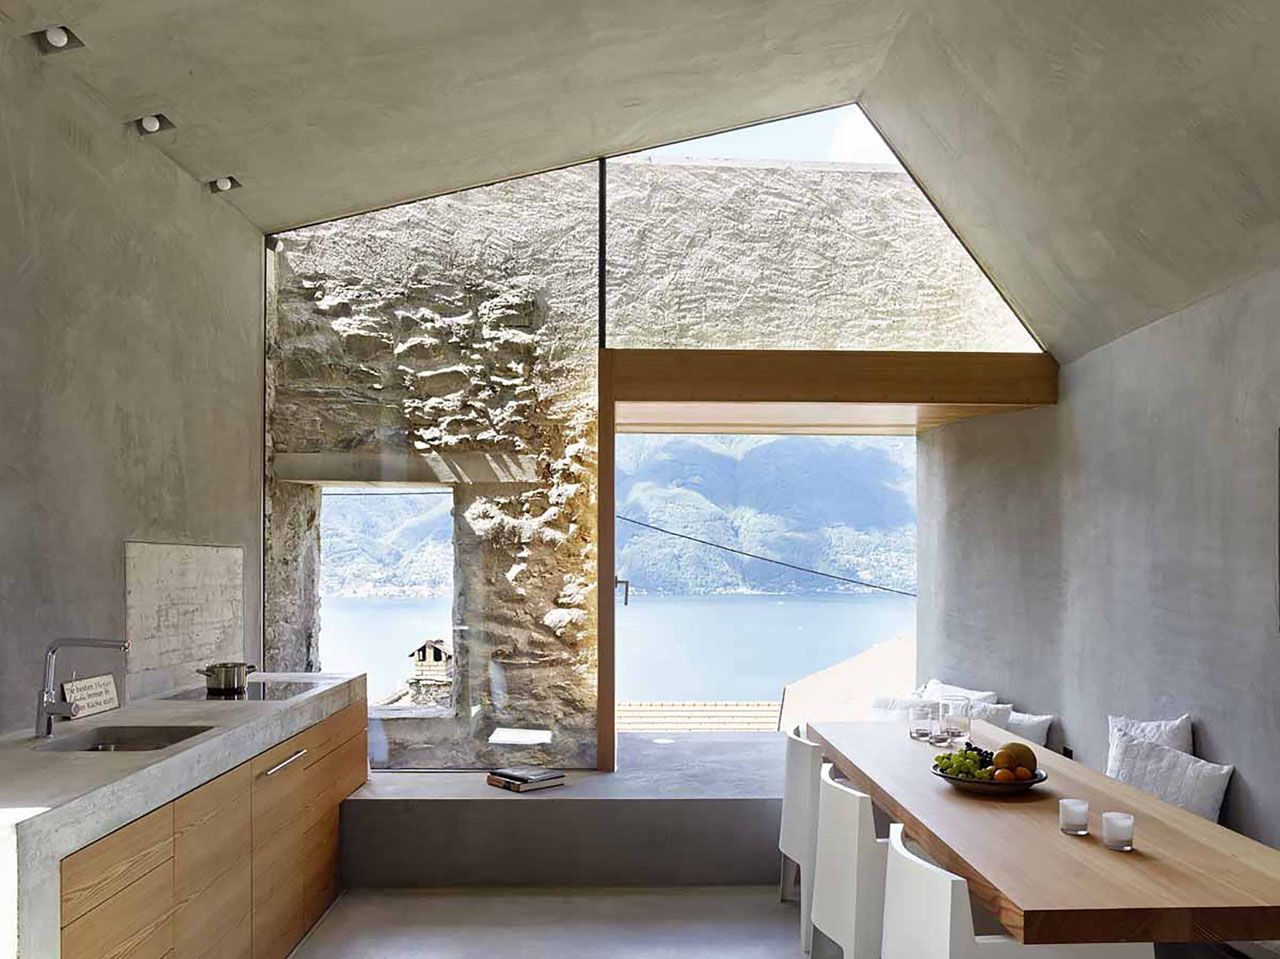 Home Und Design Modern Renovation Of An Old Stone House Scaiano Caviano